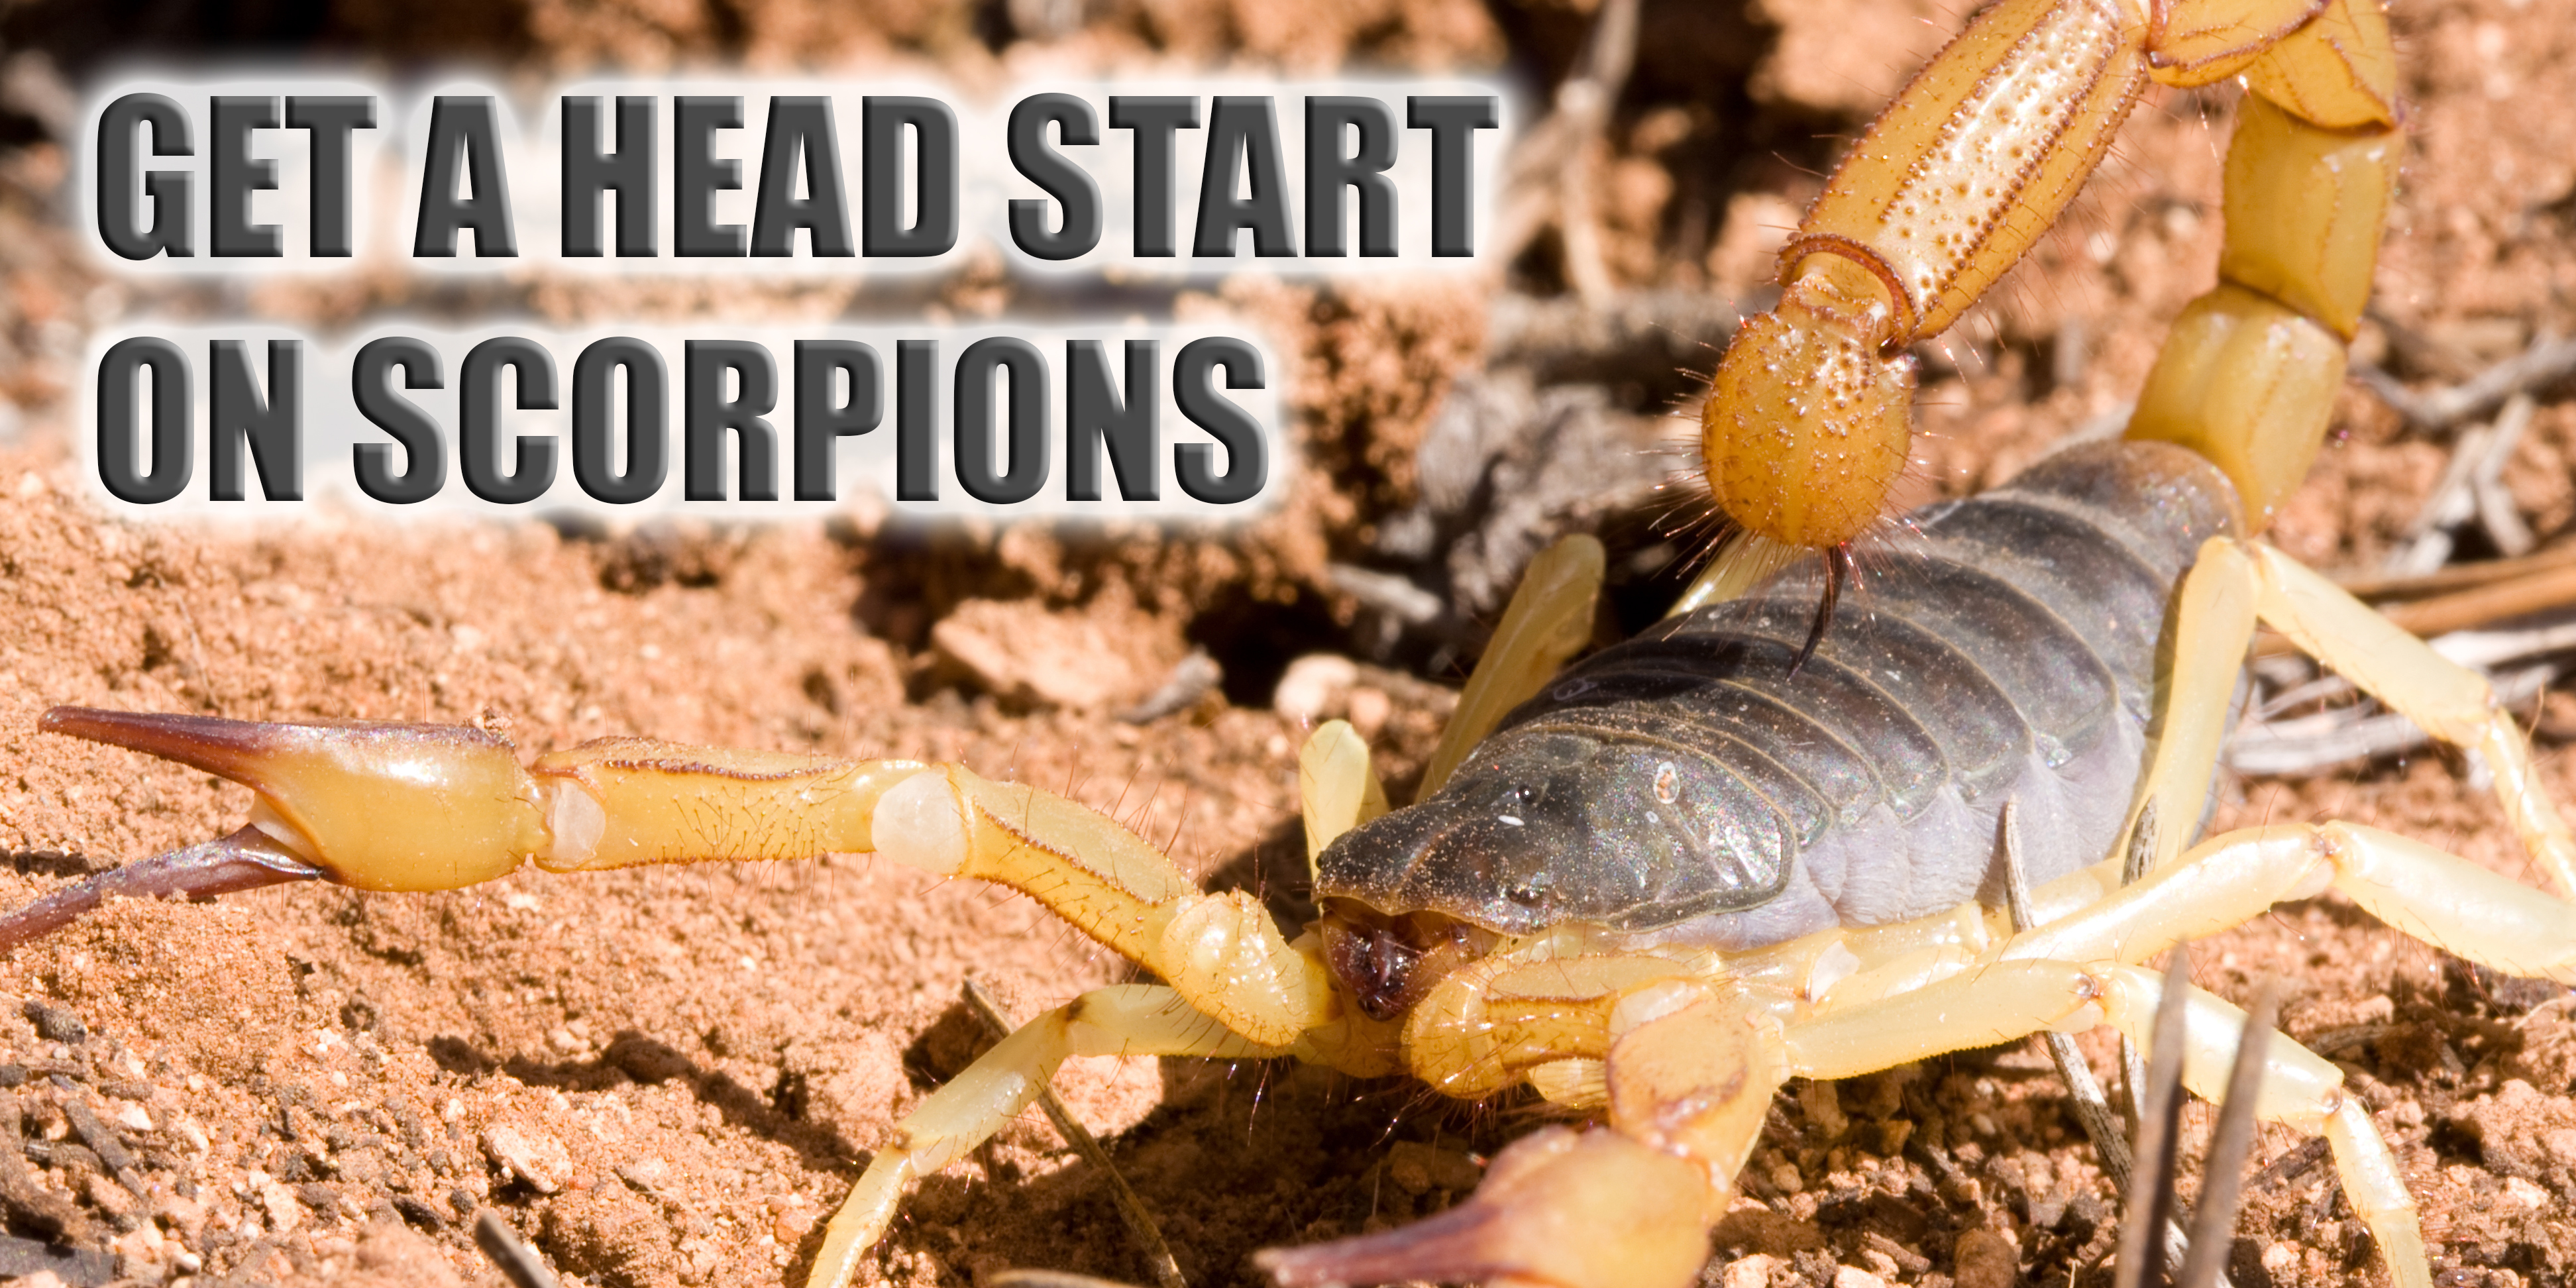 Finding Scorpions | AZEX Pest Arizona